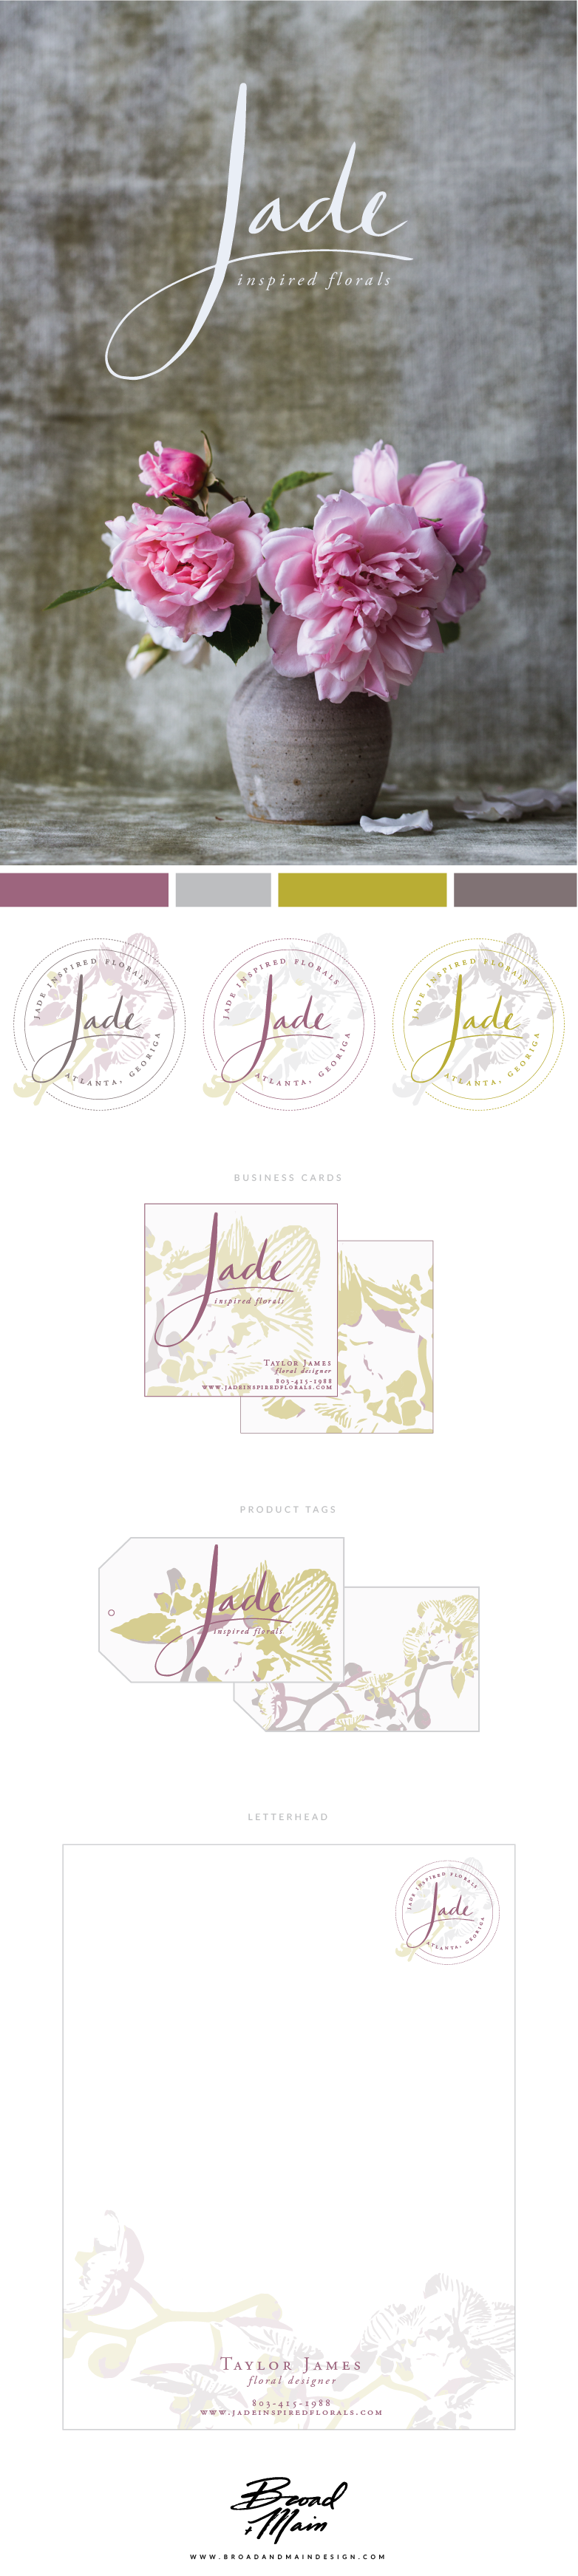 Jade | Inspired Florals Brand Design by Broad + Main